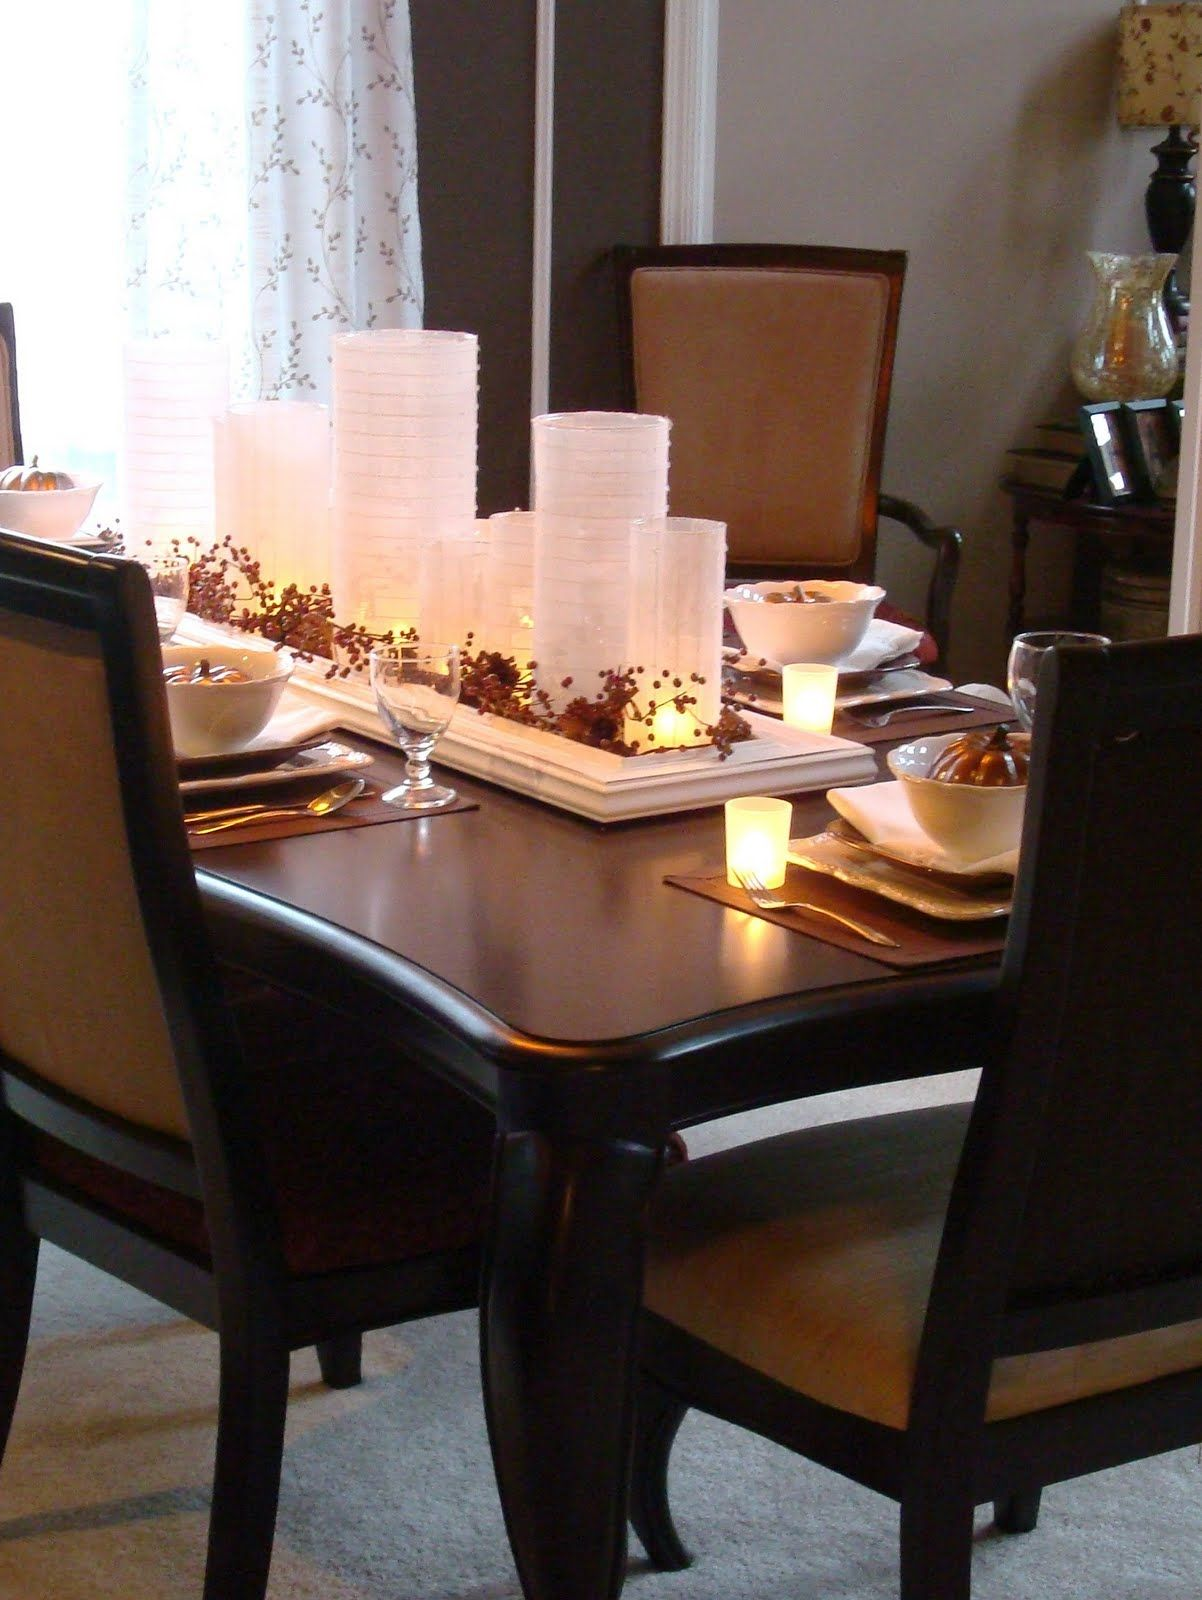 16 Thanksgiving Table Ideas Table Setting Dining Room Centerpiece Dining Room Table Centerpieces Dining Room Table Decor